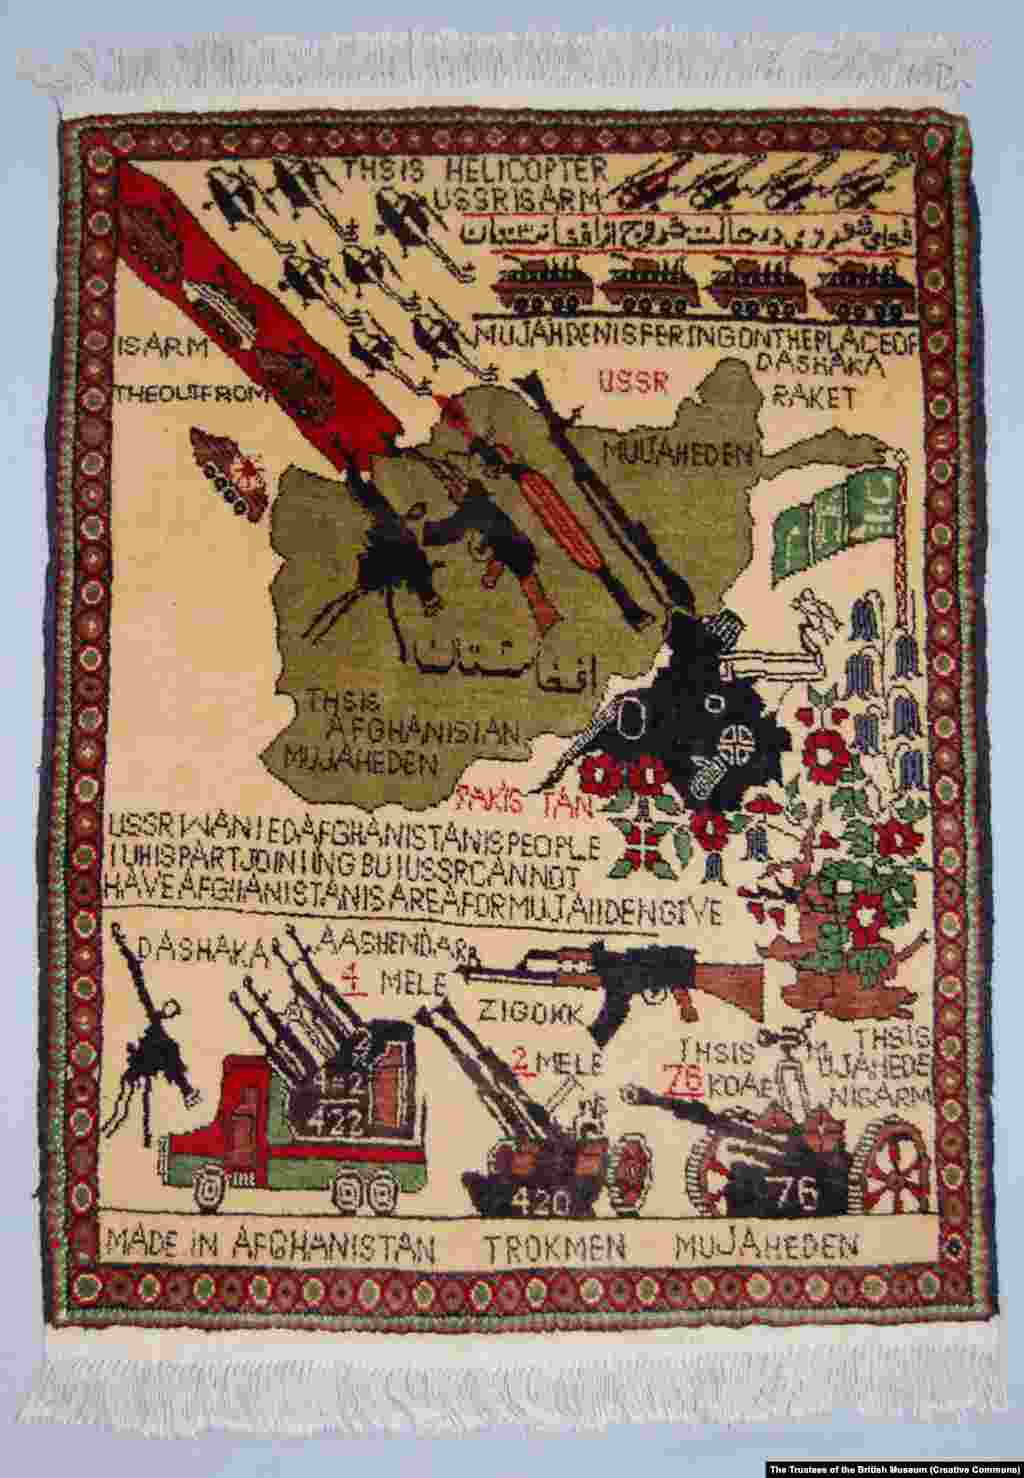 "A rug shows armored vehicles being driven out of Afghanistan along a blood-red road, apparently referencing the 1988 withdrawal of Soviet forces. Weapons are labeled with the nicknames the CIA-supplied mujahedin fighters used: ""Dashaka"" for the DsHK heavy machine gun, and ""Zigokk"" for the ZPU anti-aircraft gun."